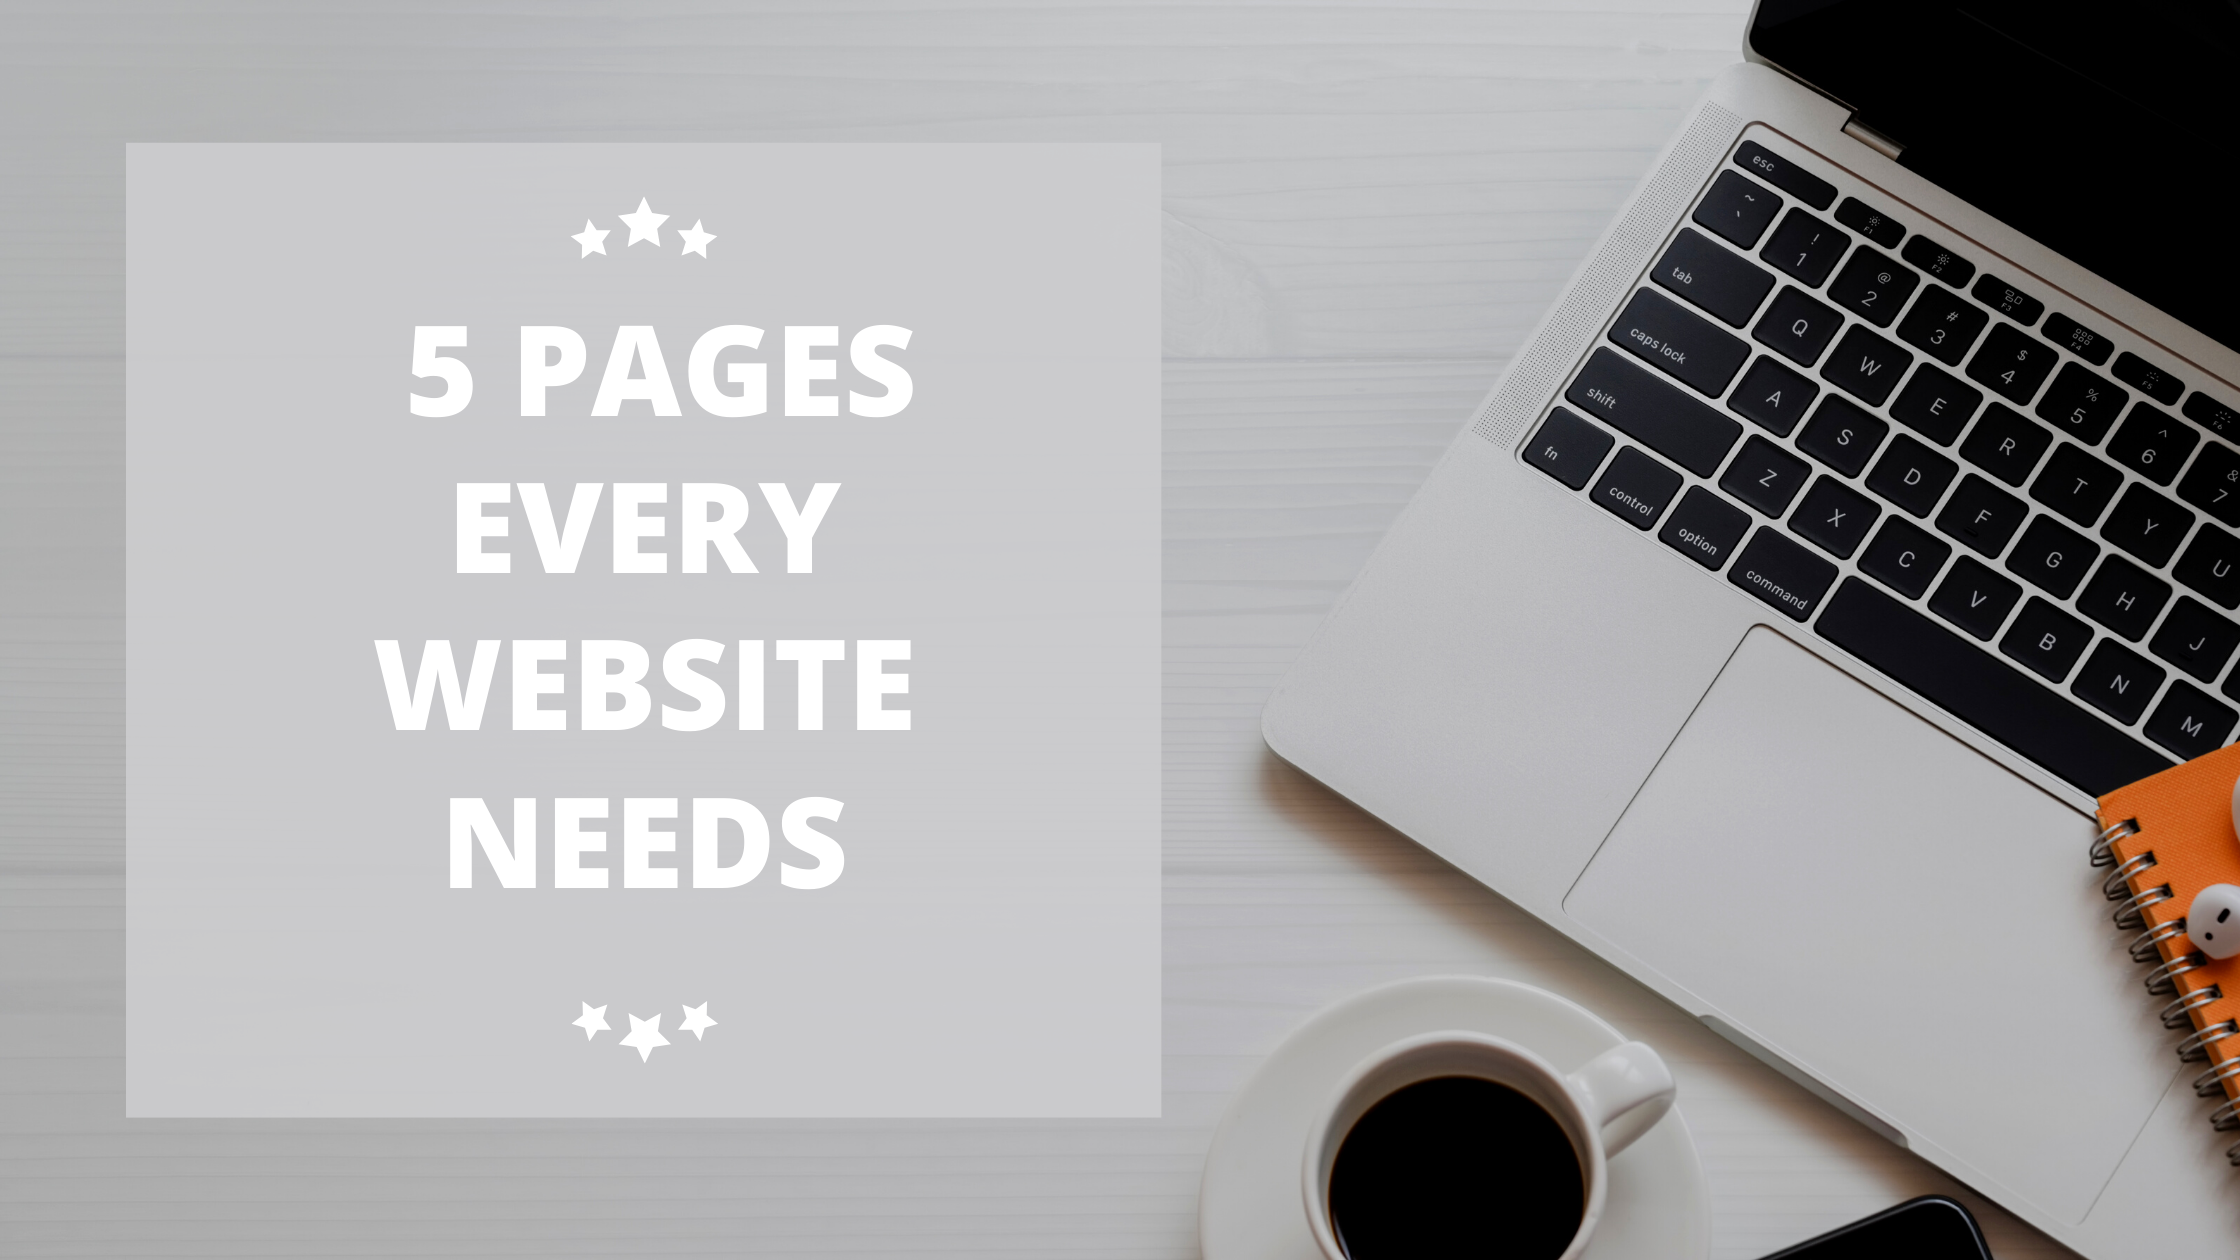 5 pages every website needs